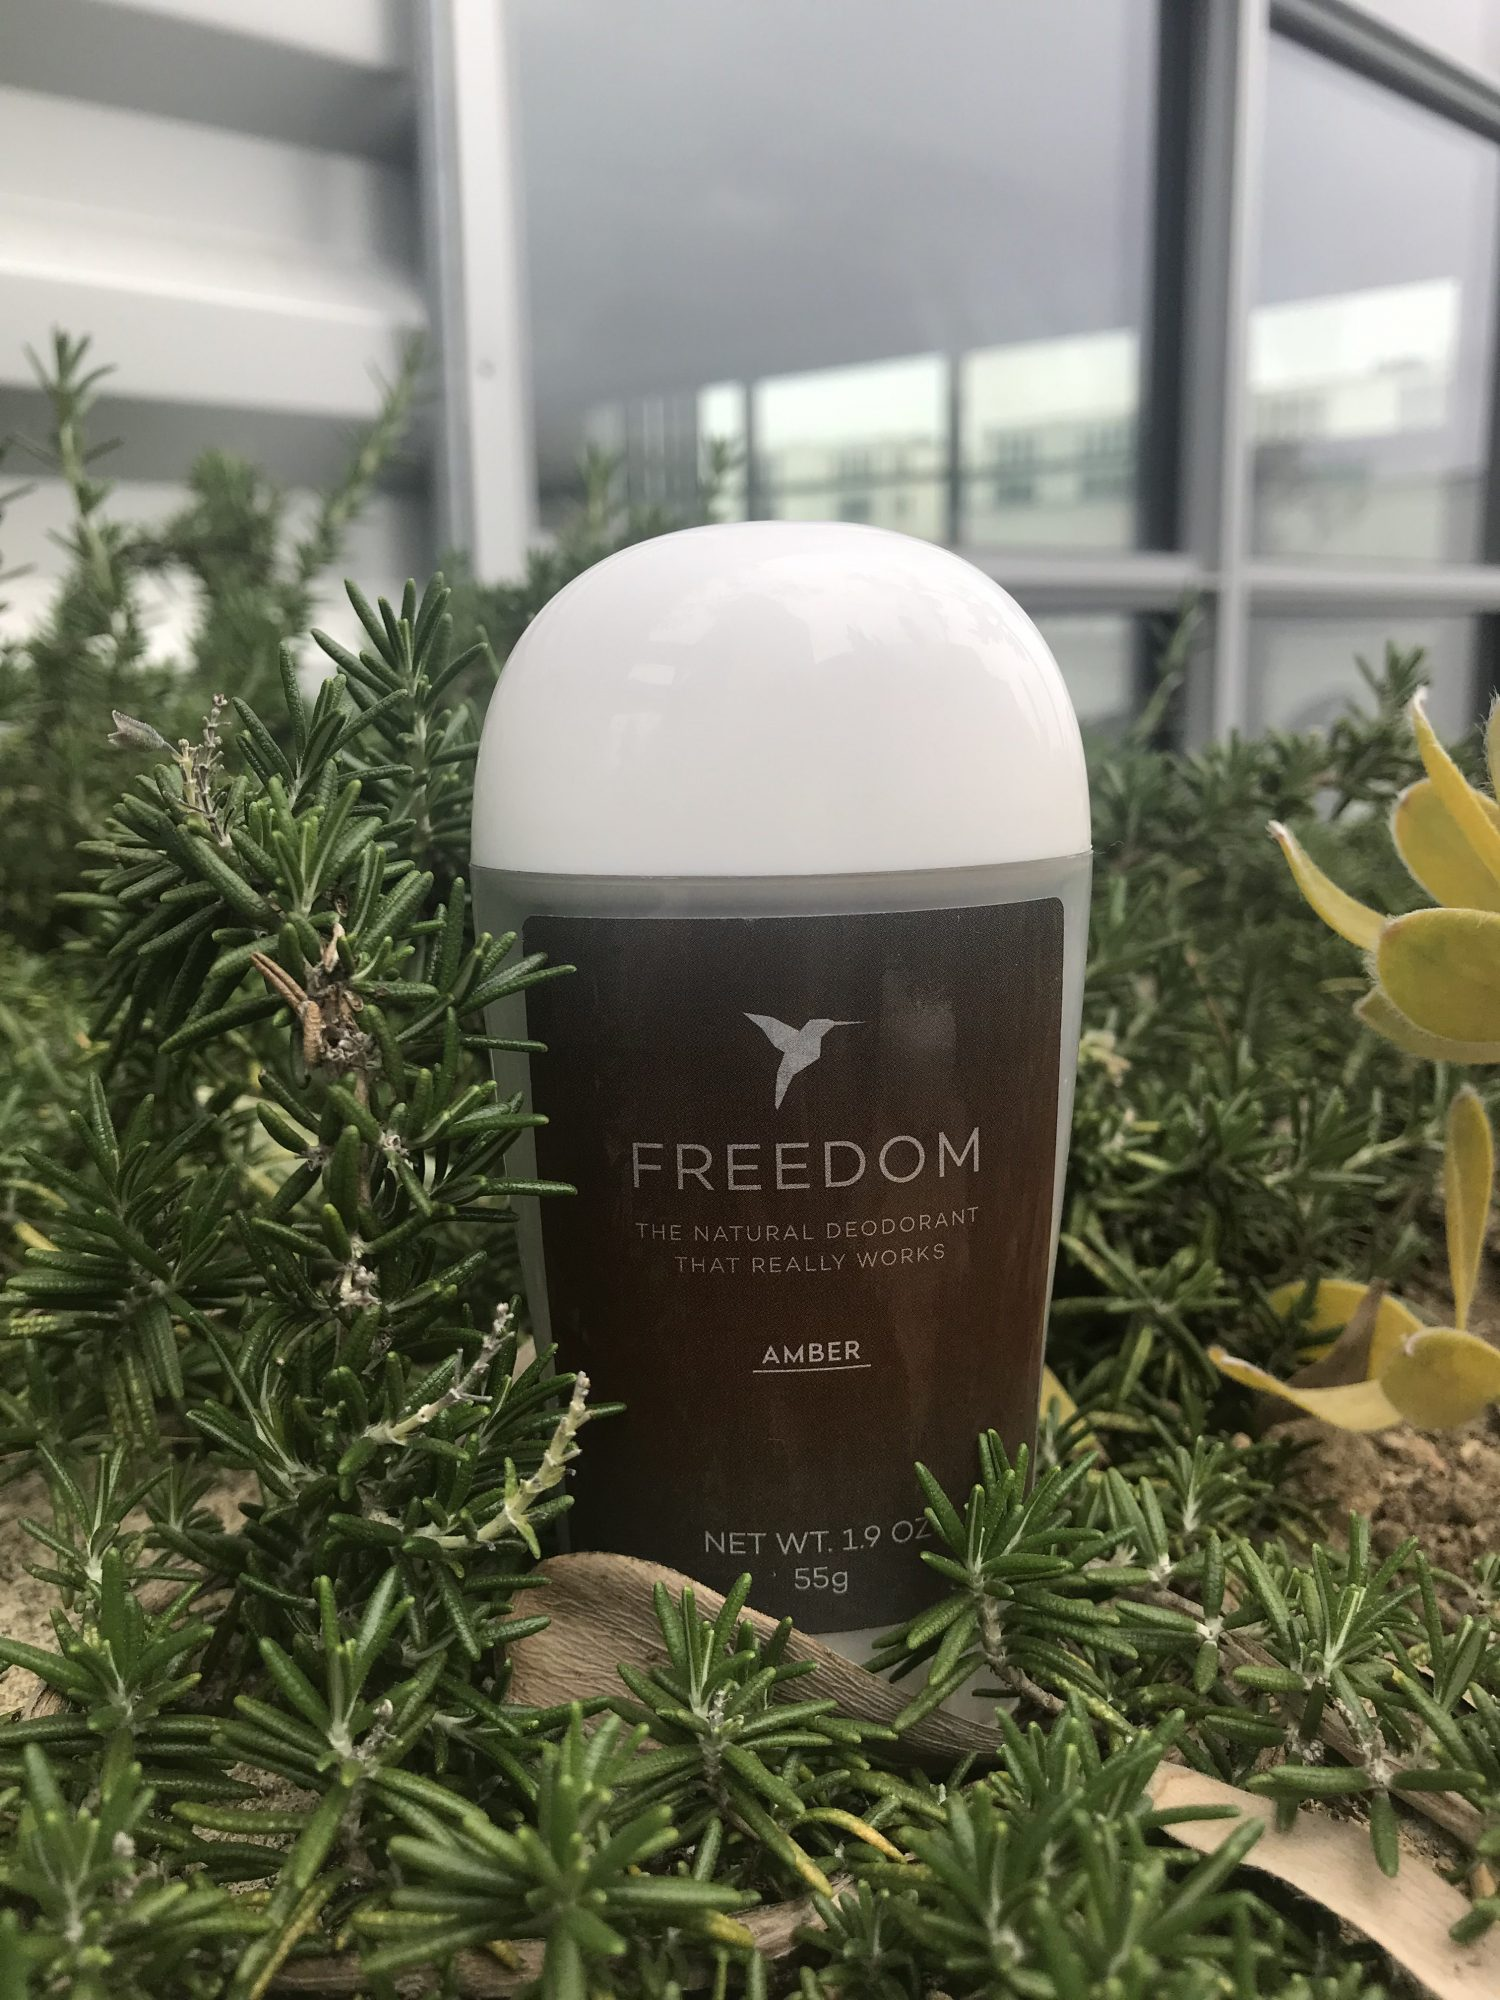 freedom-deodorant-review-2-e1520645629696.jpg